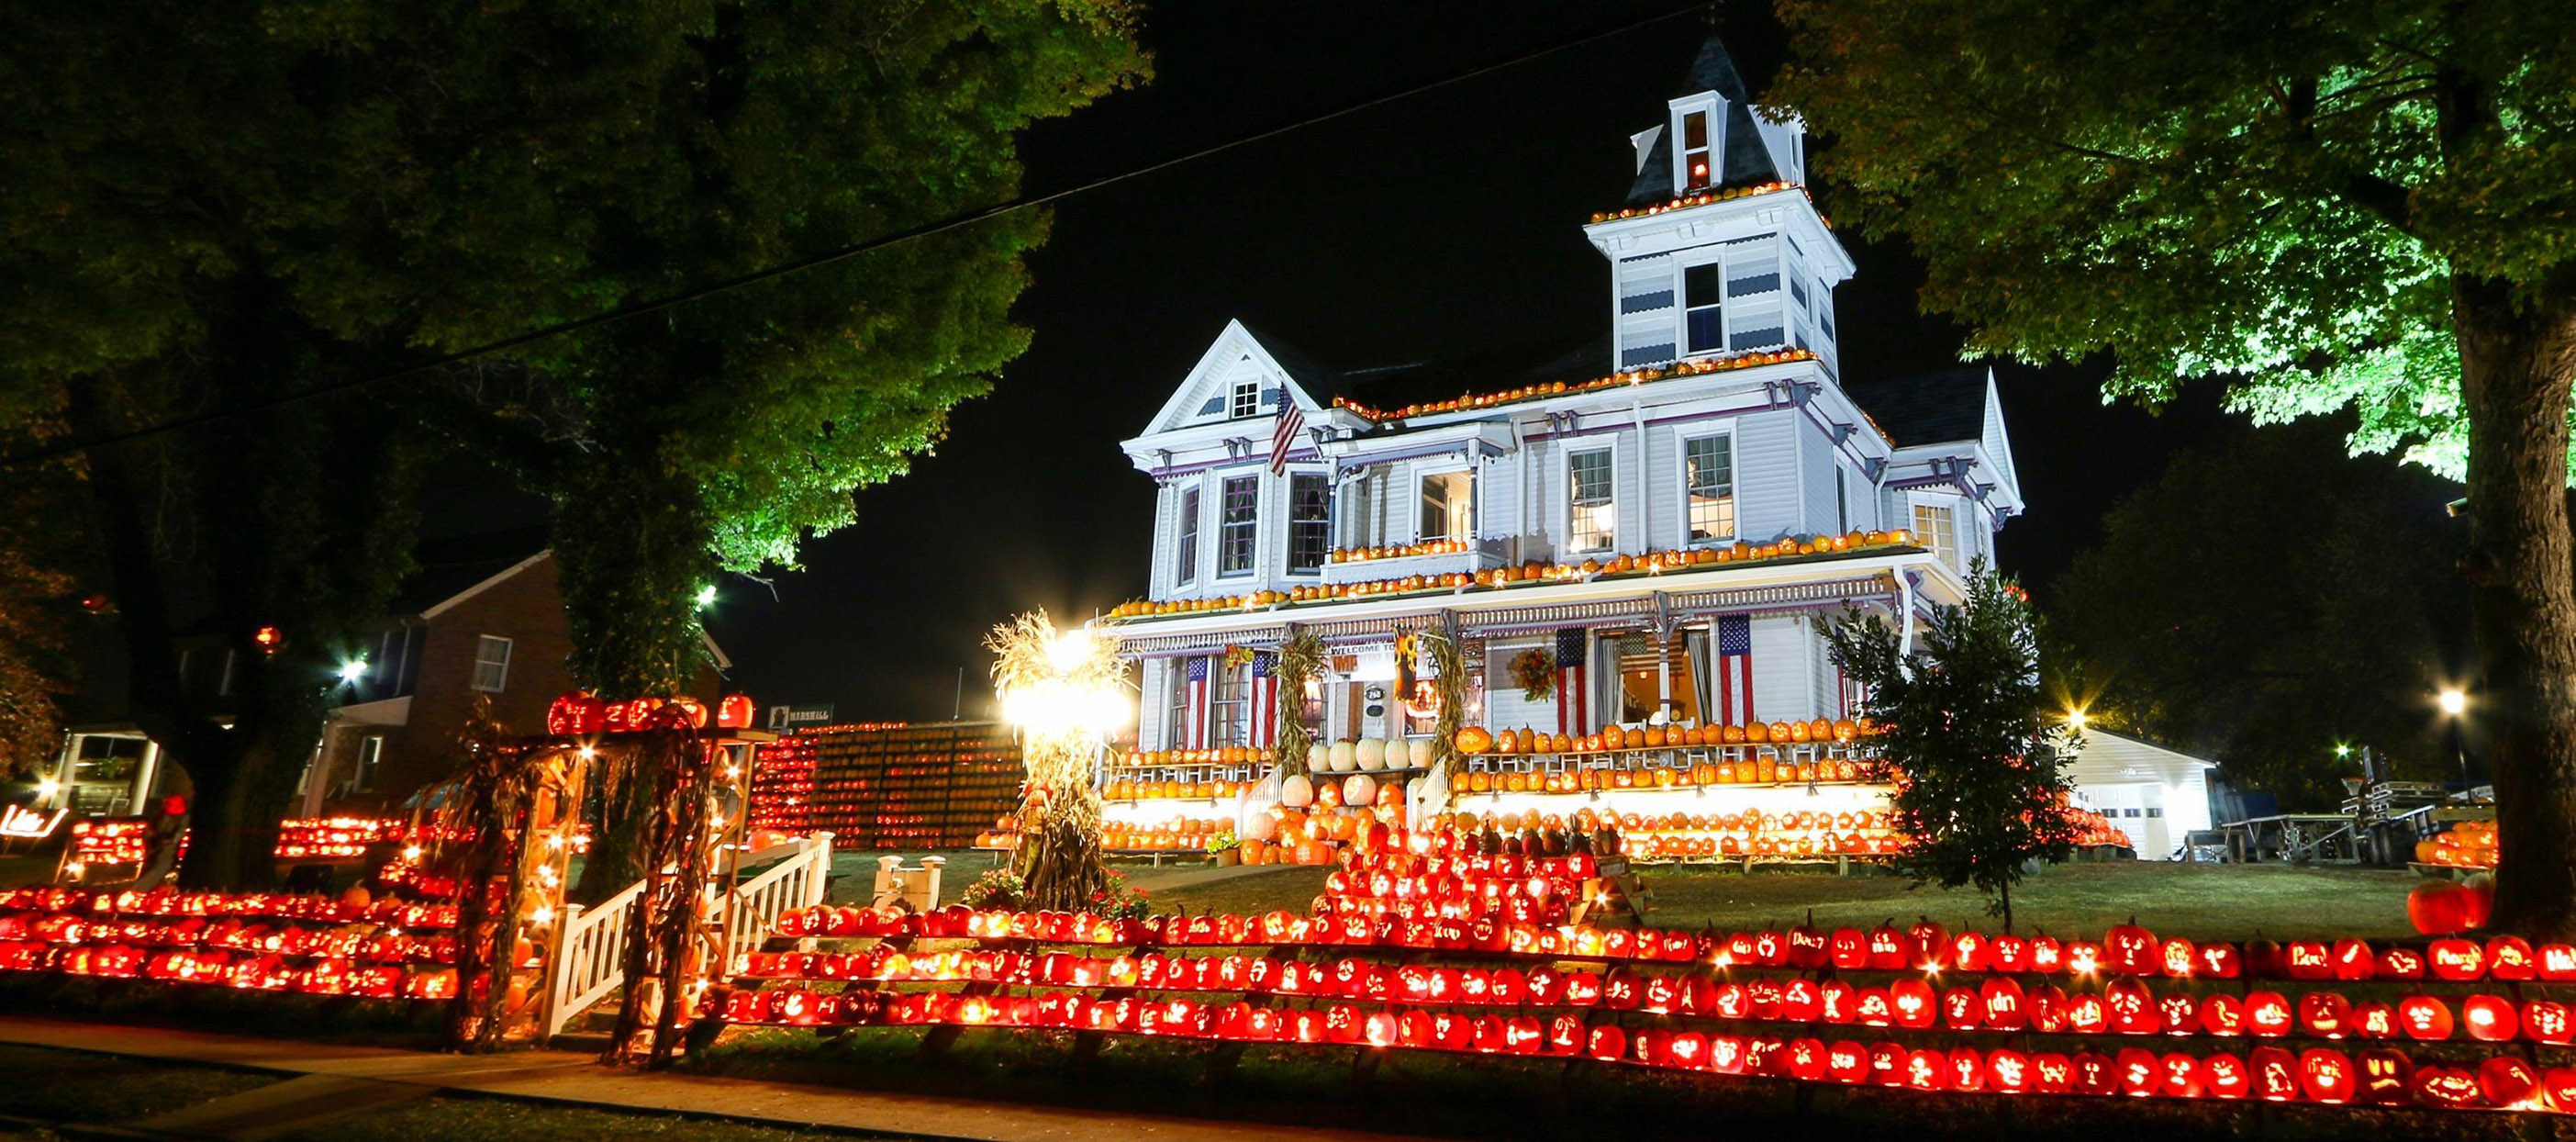 8 Amazing Pumpkin Displays You Have to See to Believe